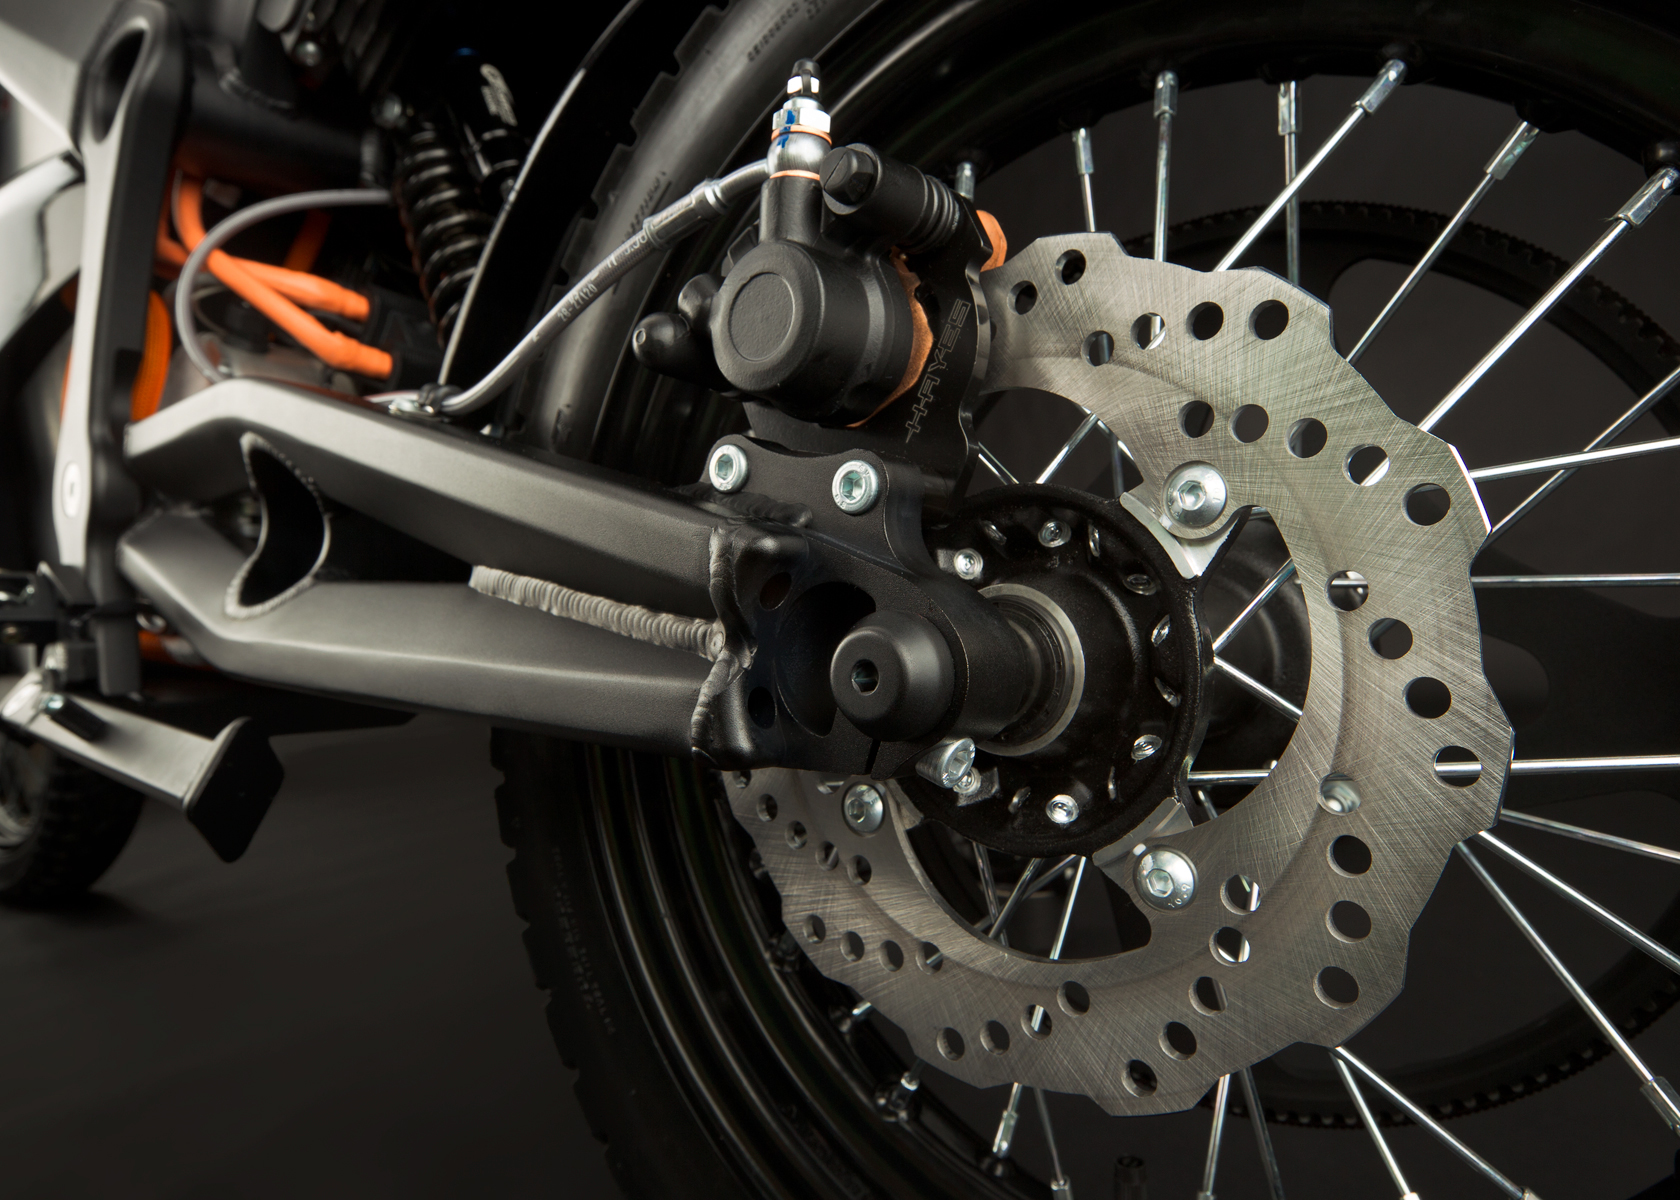 '.2012 Zero DS Electric Motorcycle: Swingarm.'